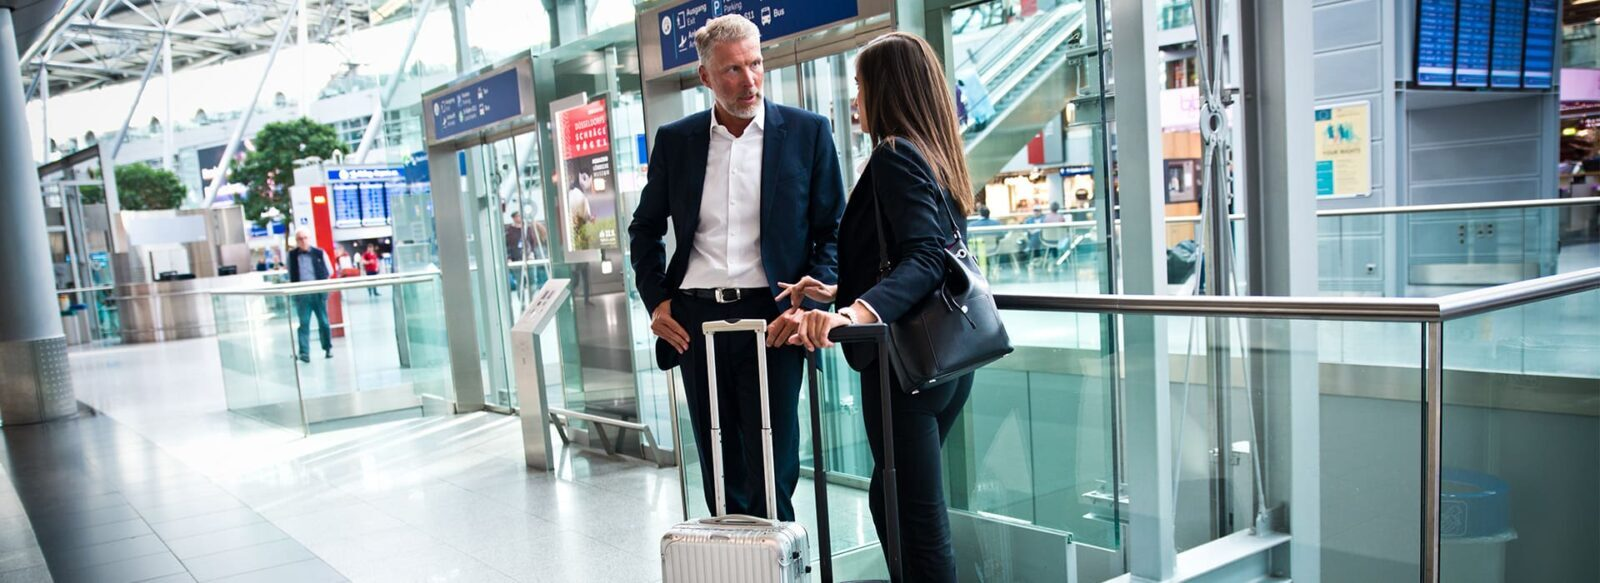 Unternehmen HM Business Travel GmbH Messehotels Travel Management - Company